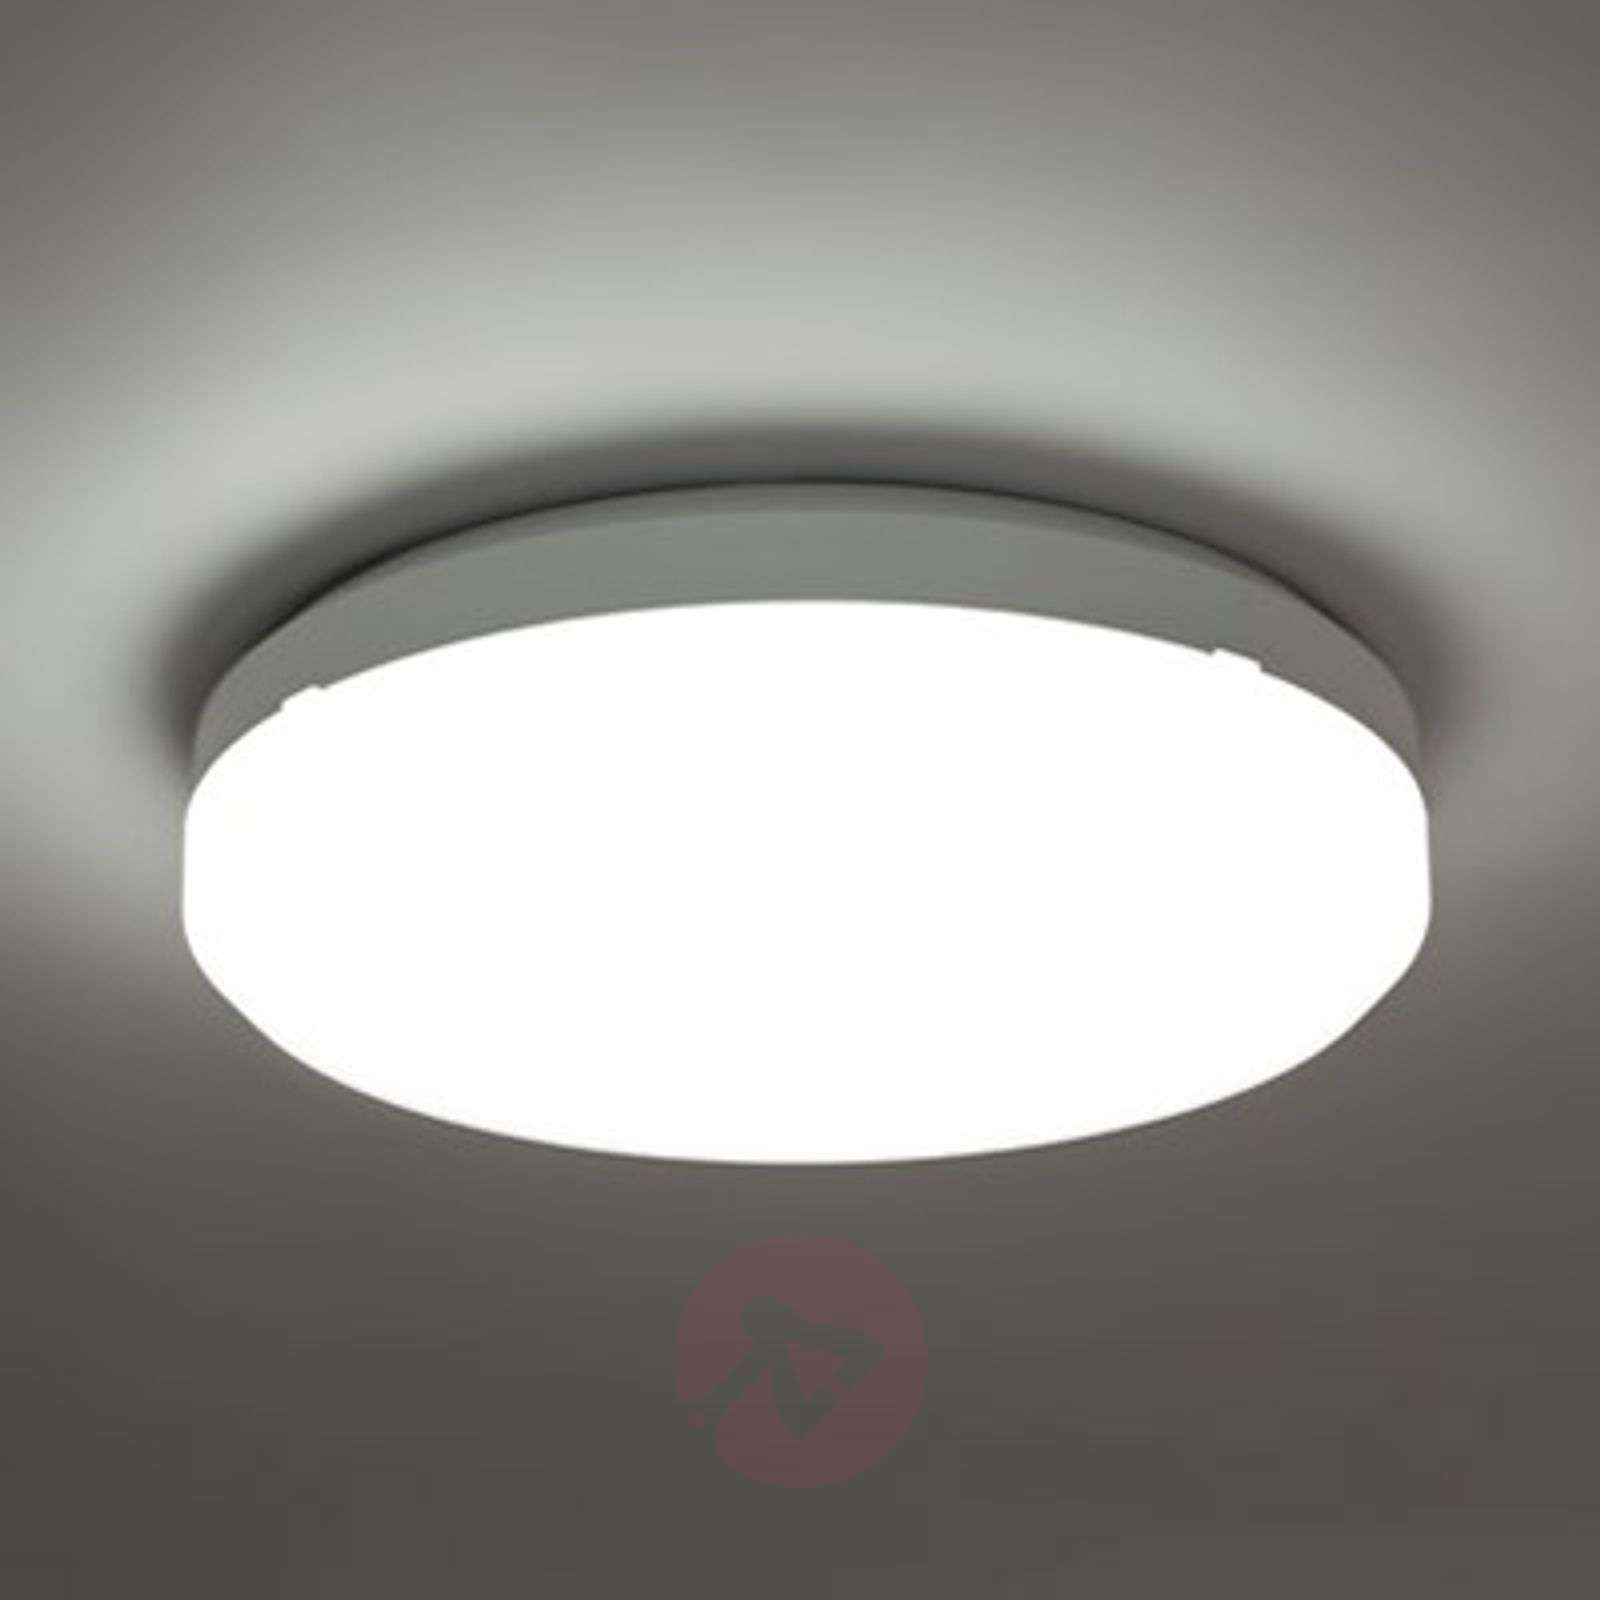 SUN 15 led-plafondlamp IP65-1018311X-02